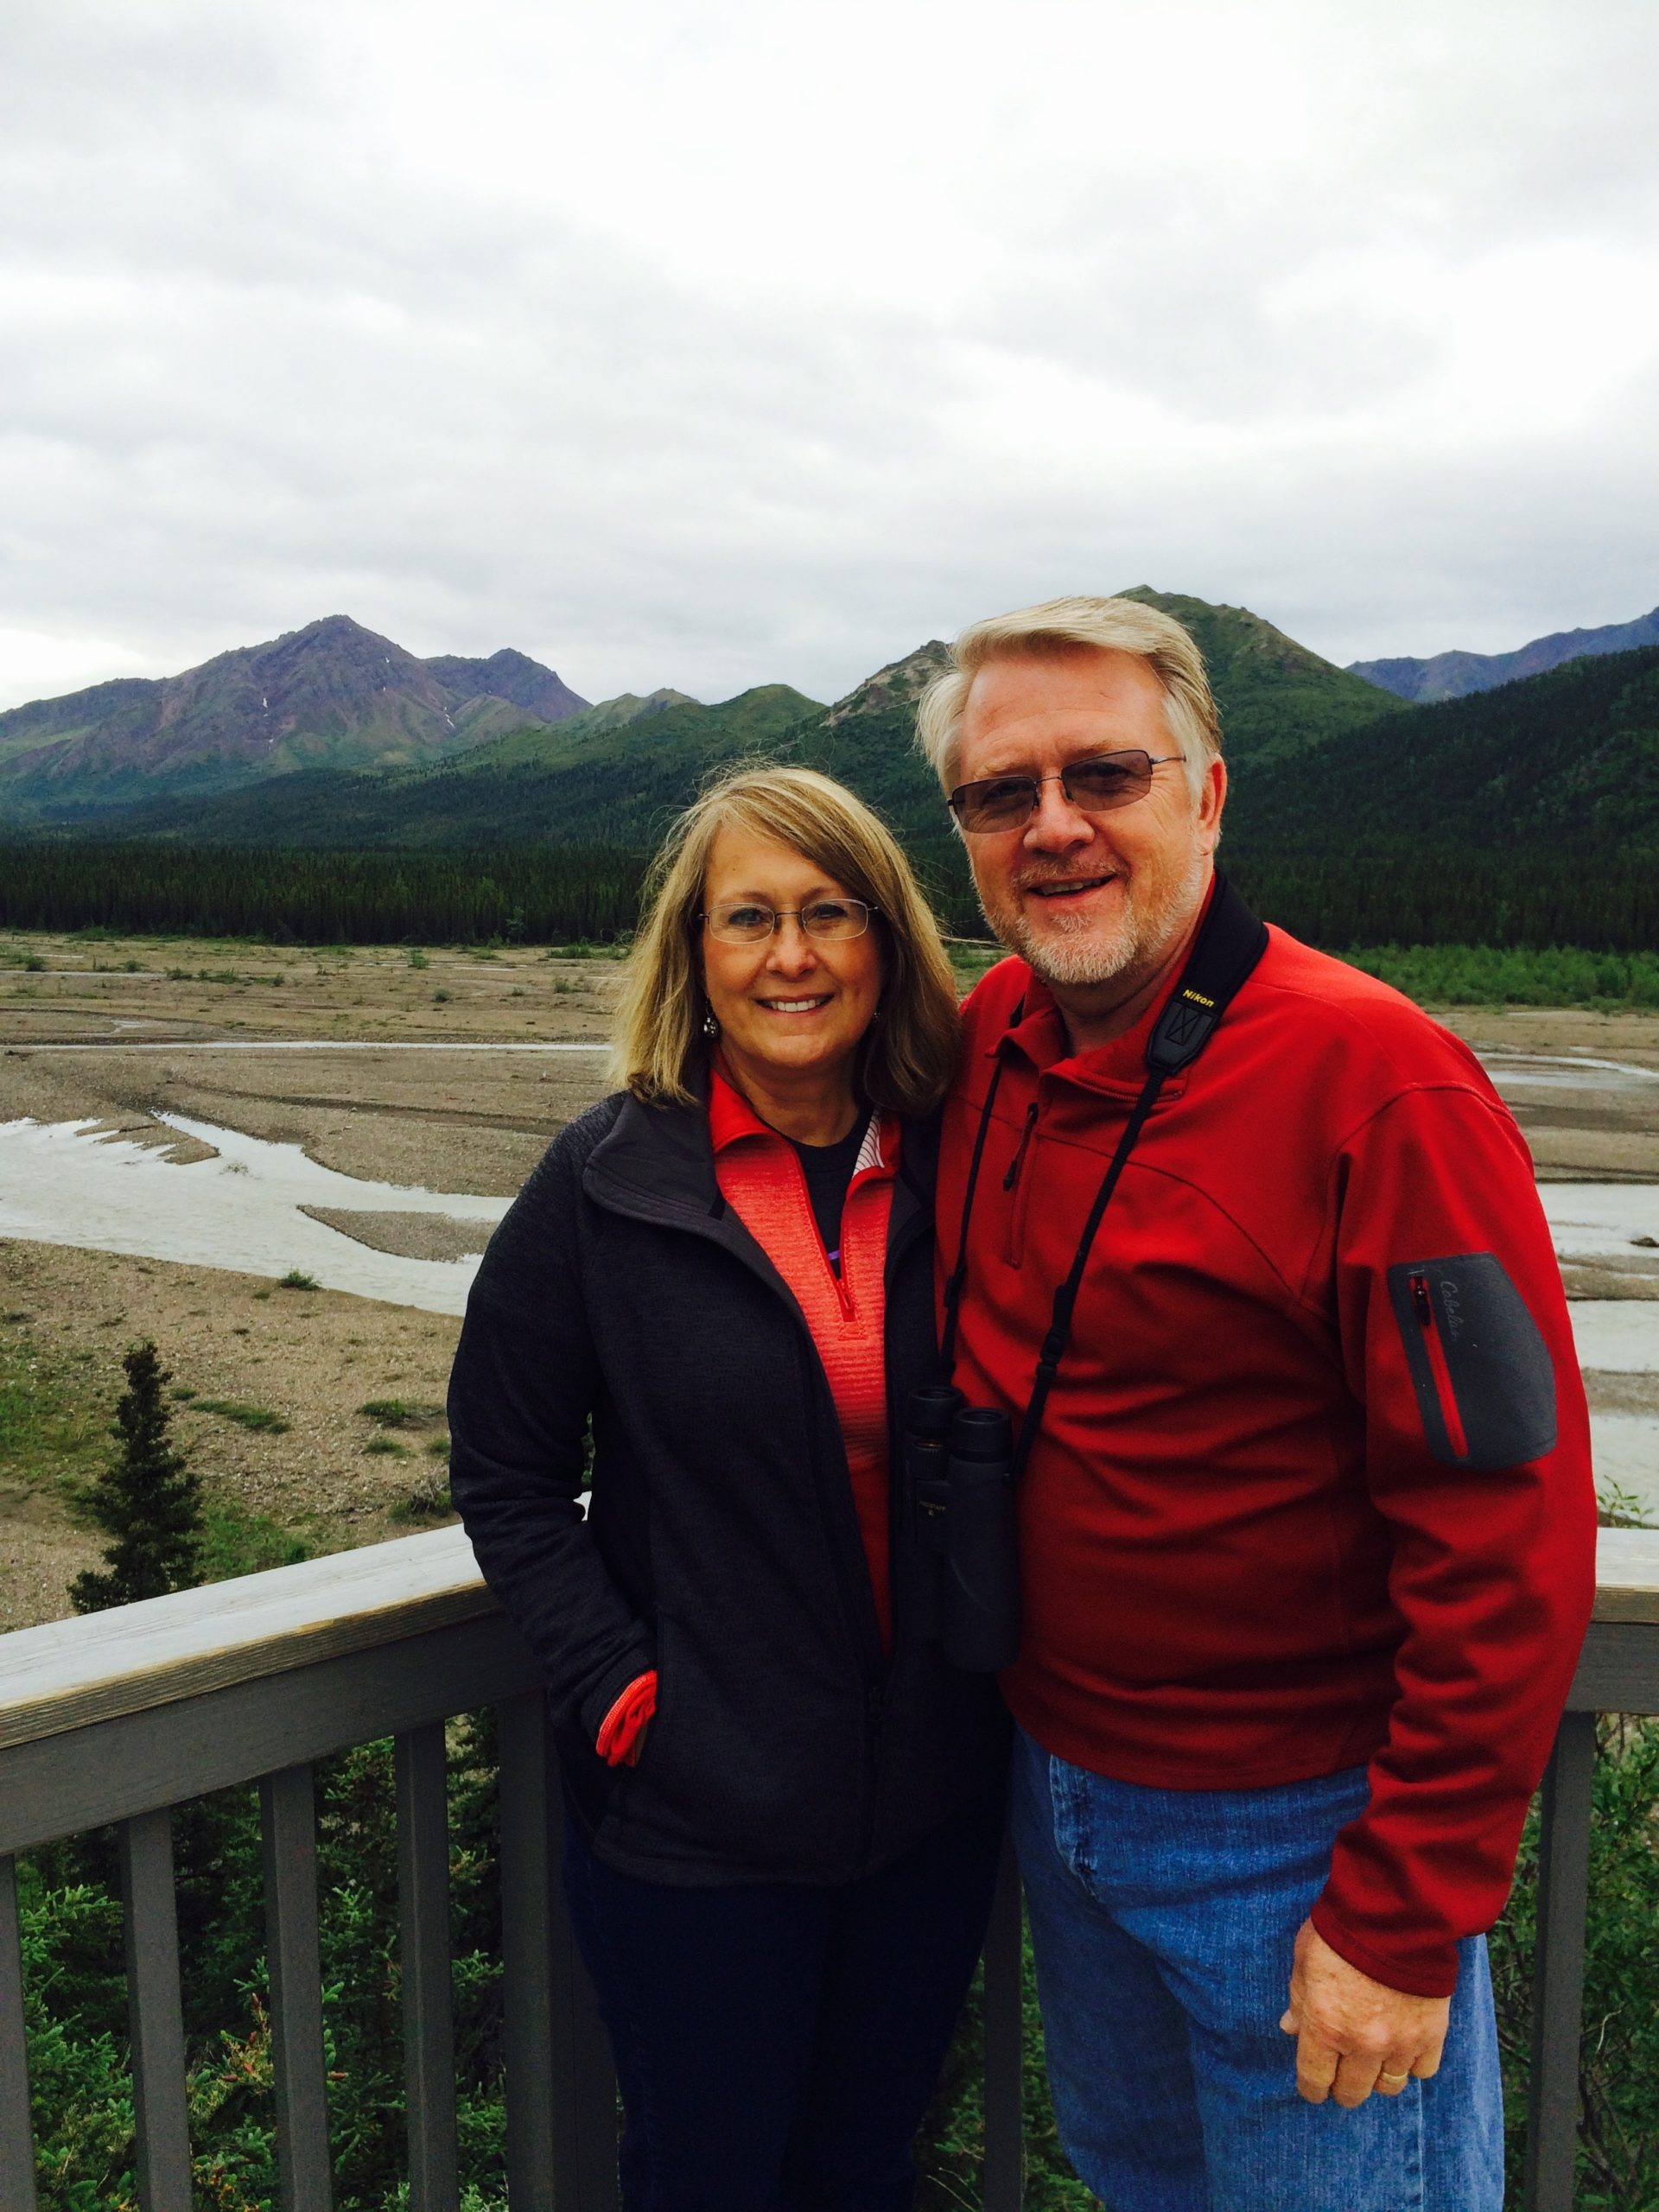 Patient Dan Sedlacek and wife with mountains in the background